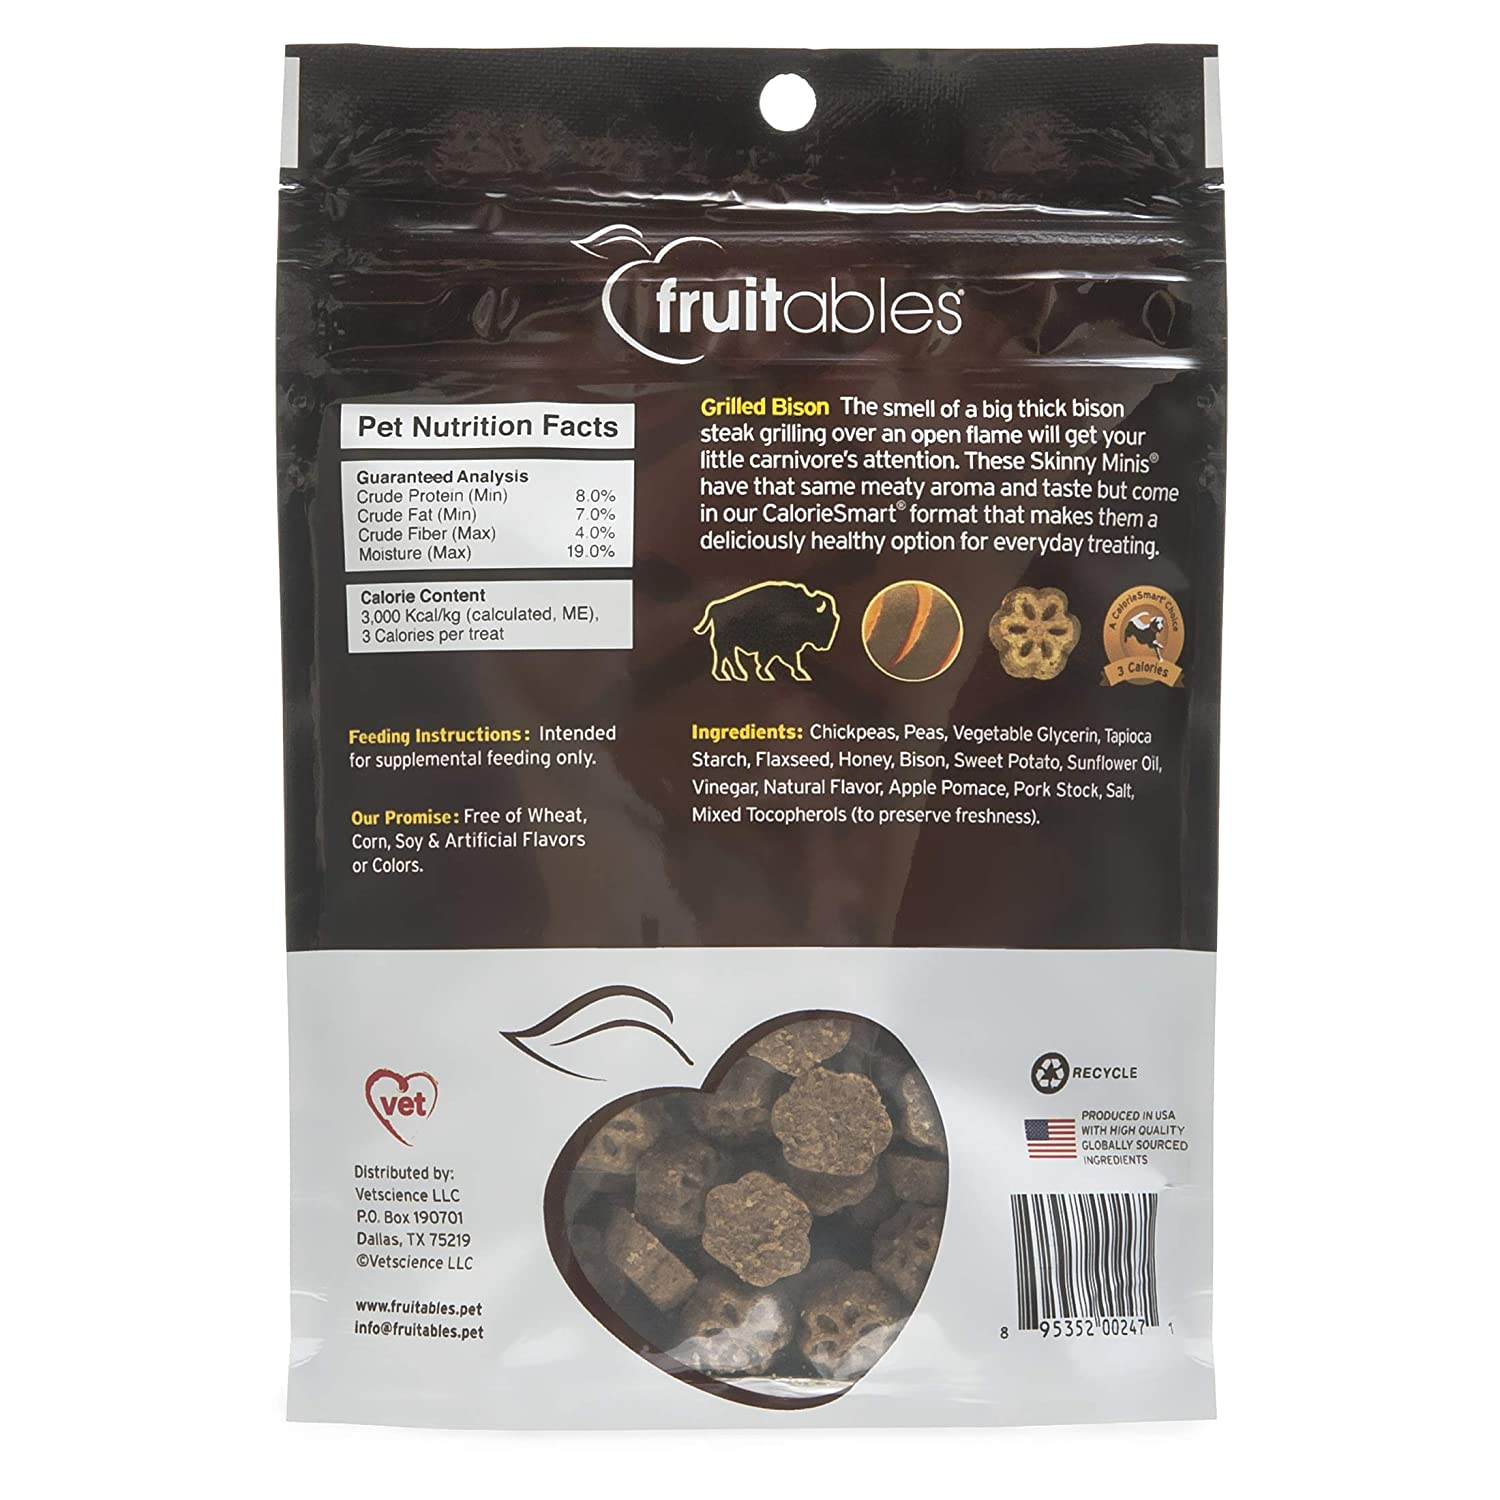 Fruitables Skinny Minis 5 Ounce Grilled Bison Chewy Dog Treats